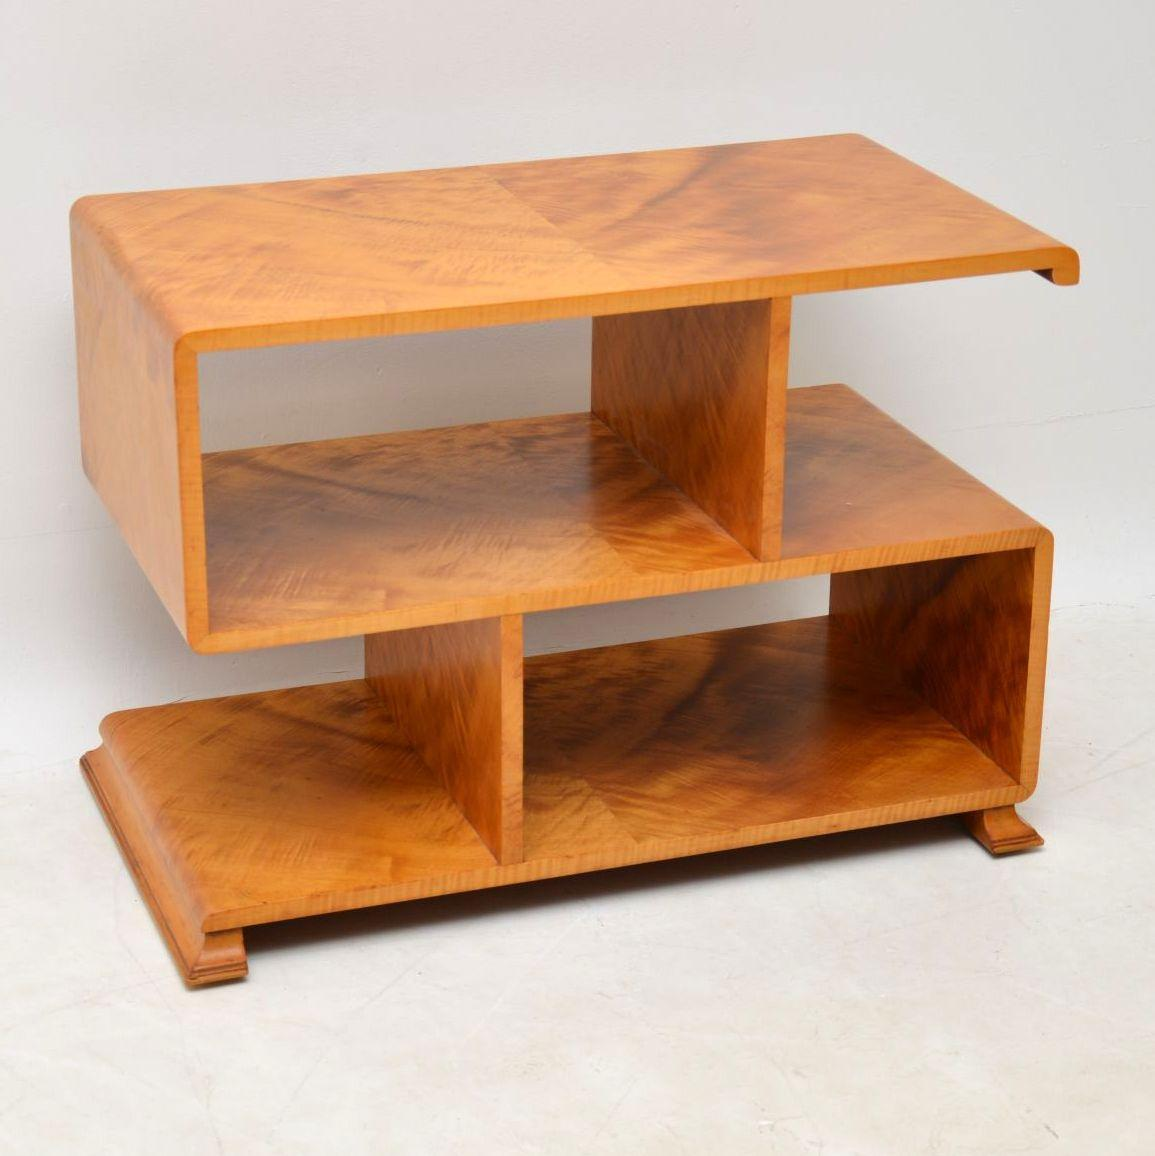 Superieur 1920s Art Deco Satin Wood Bookcase Or Side Table